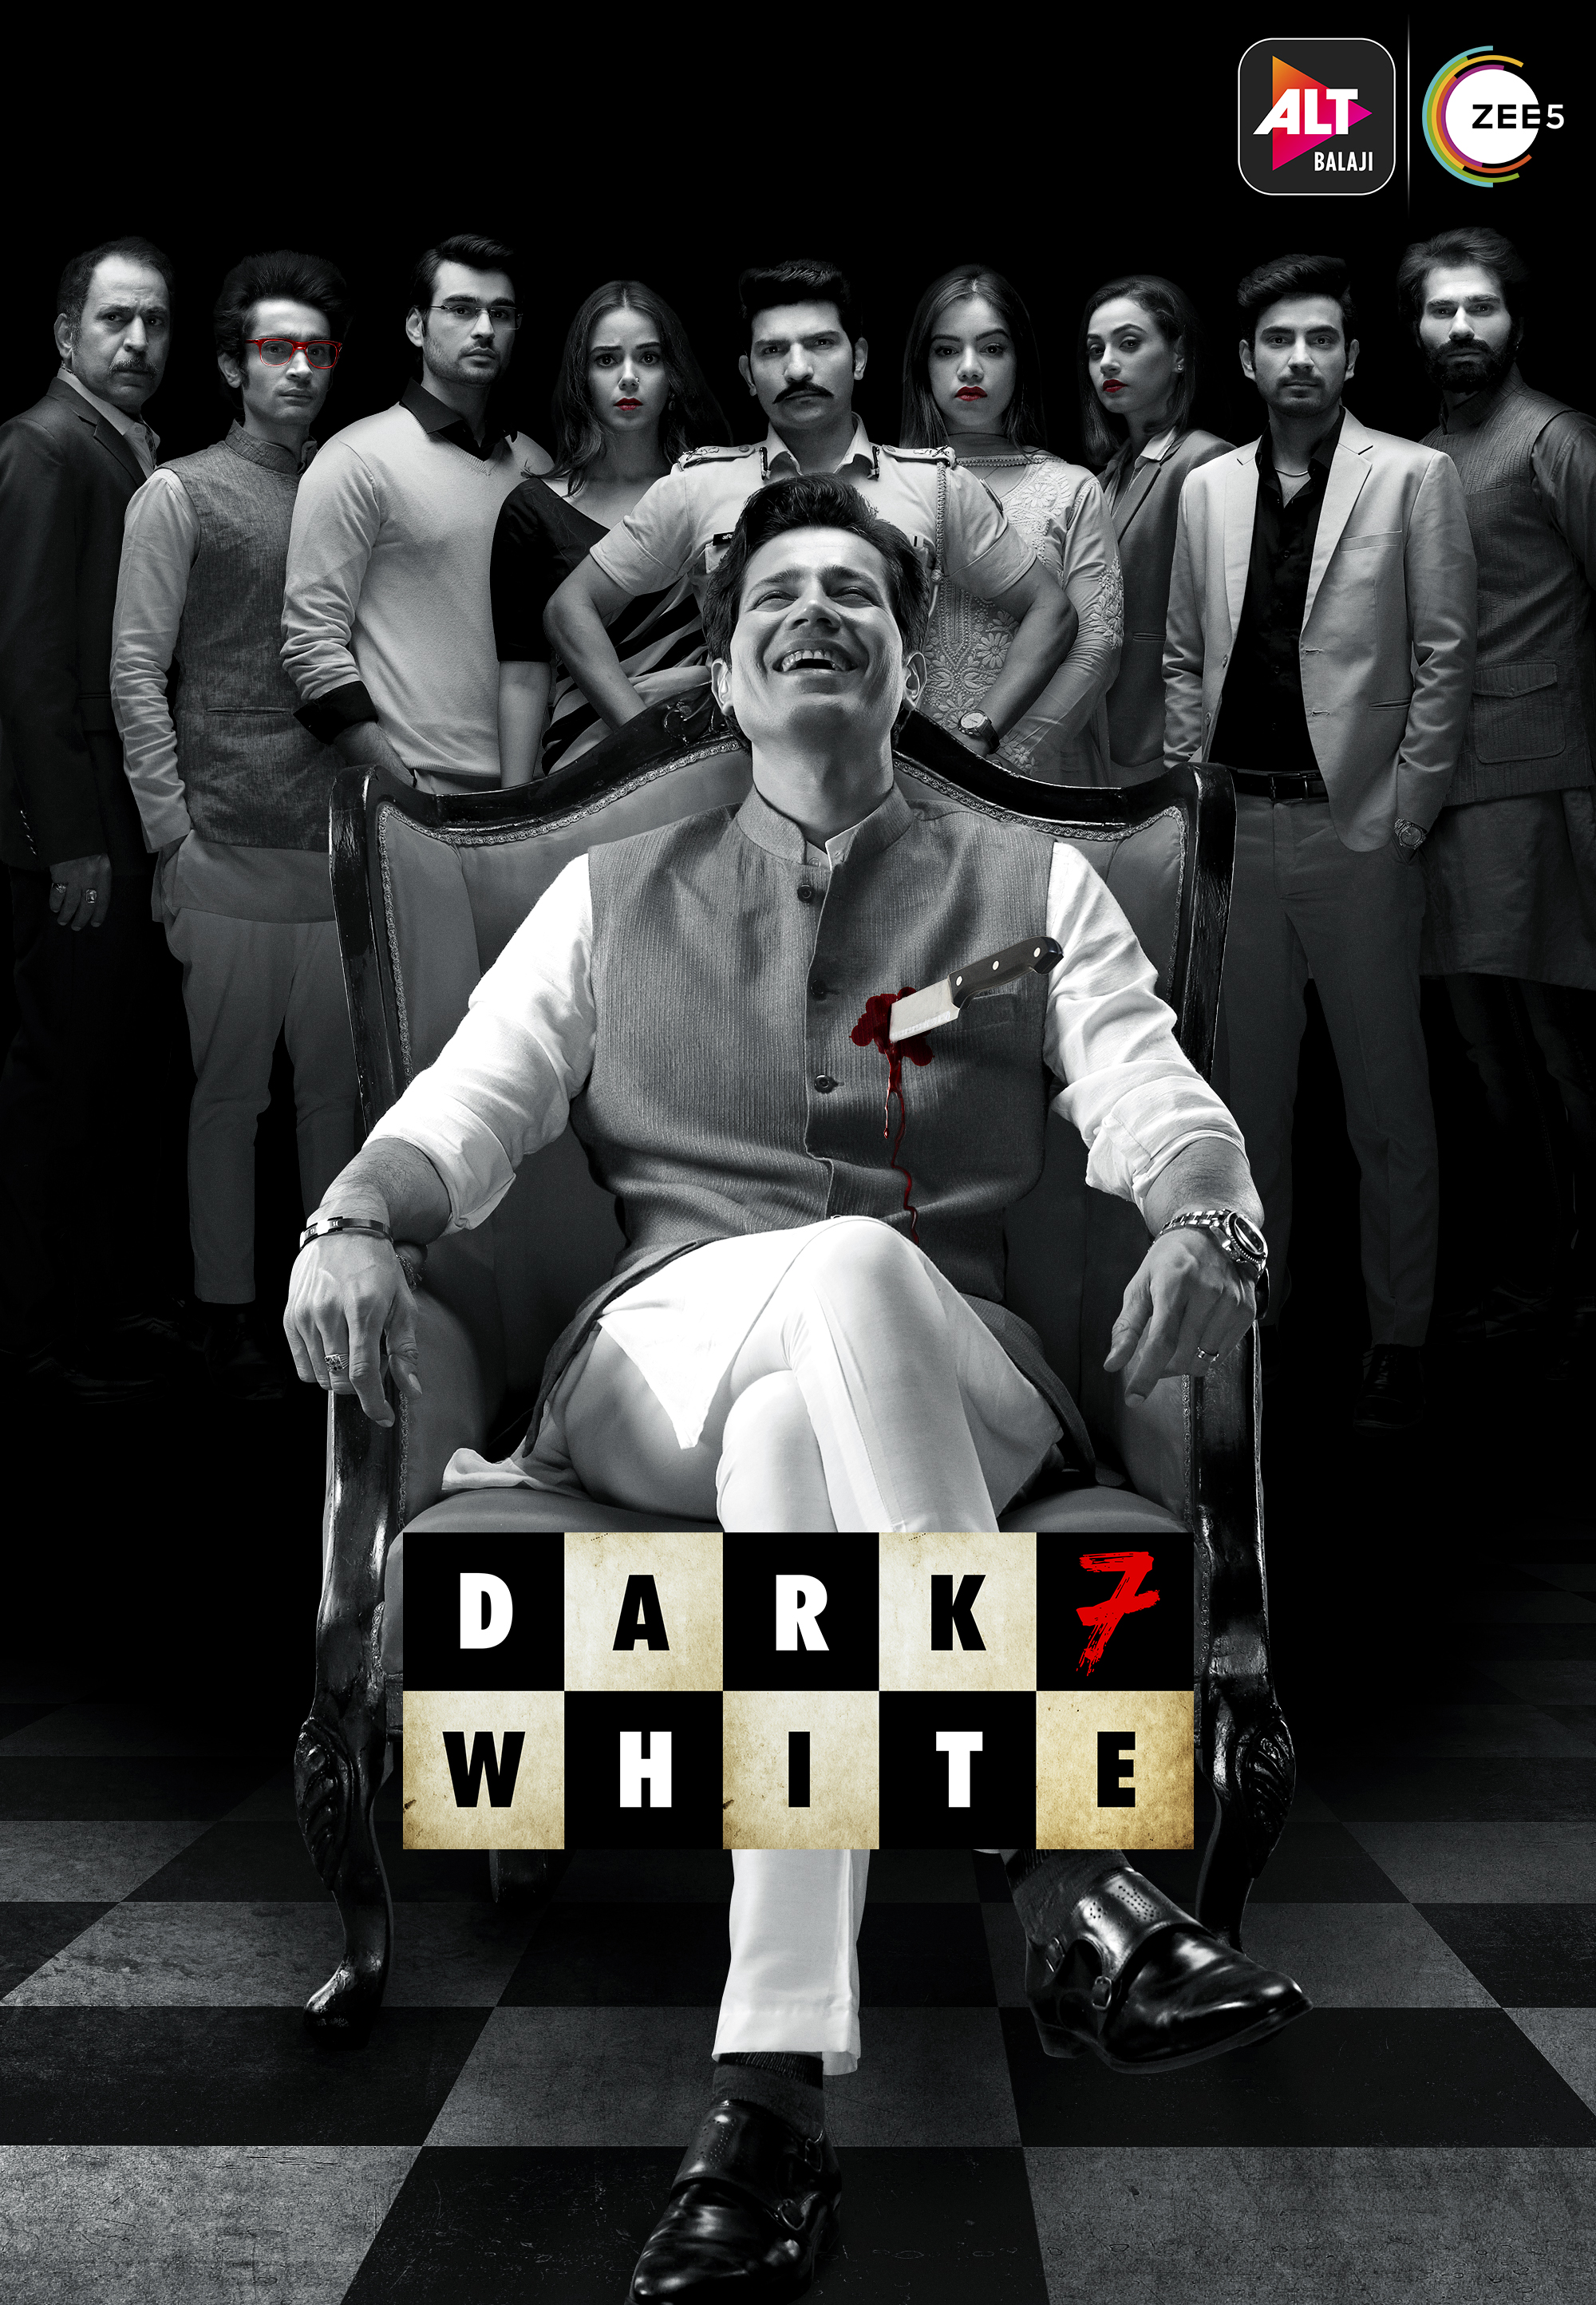 Dark 7 White 2020 S01 Hindi Complete ALTBalaji Original Web Series 720p HDRip 1370MB Download